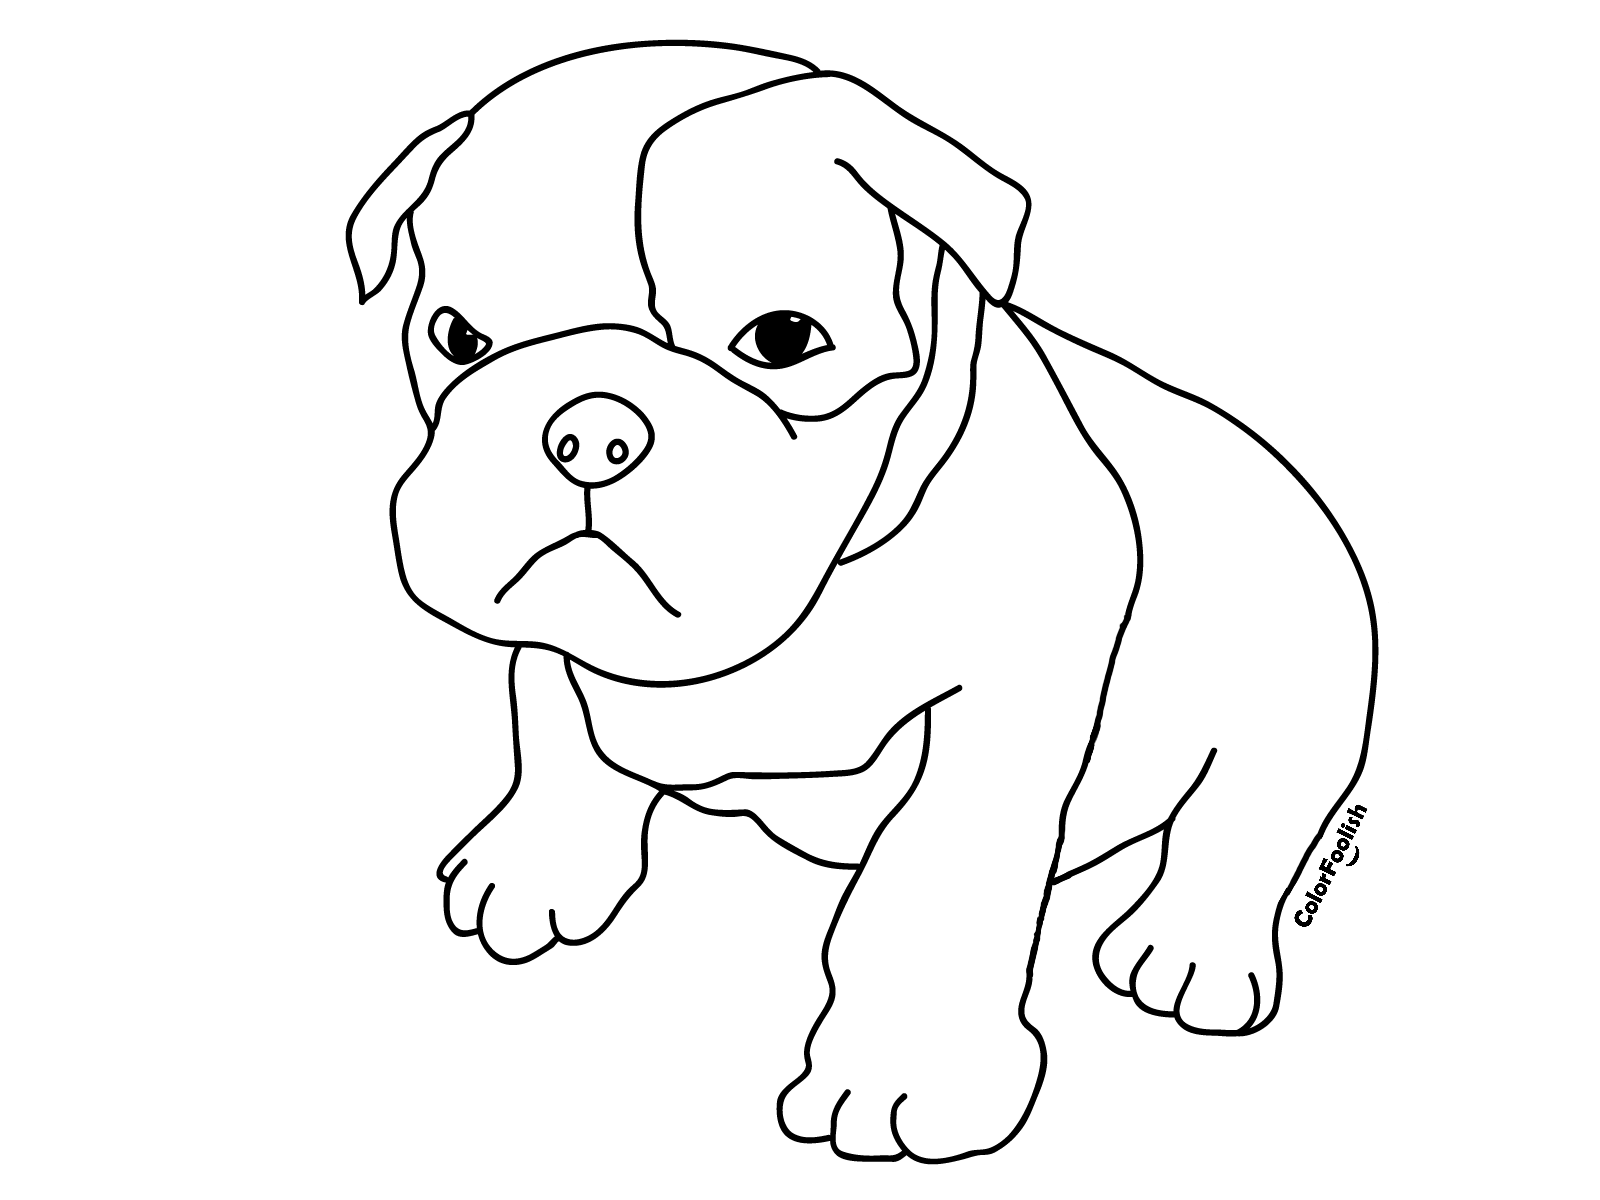 Coloring page of an angry boxer puppy